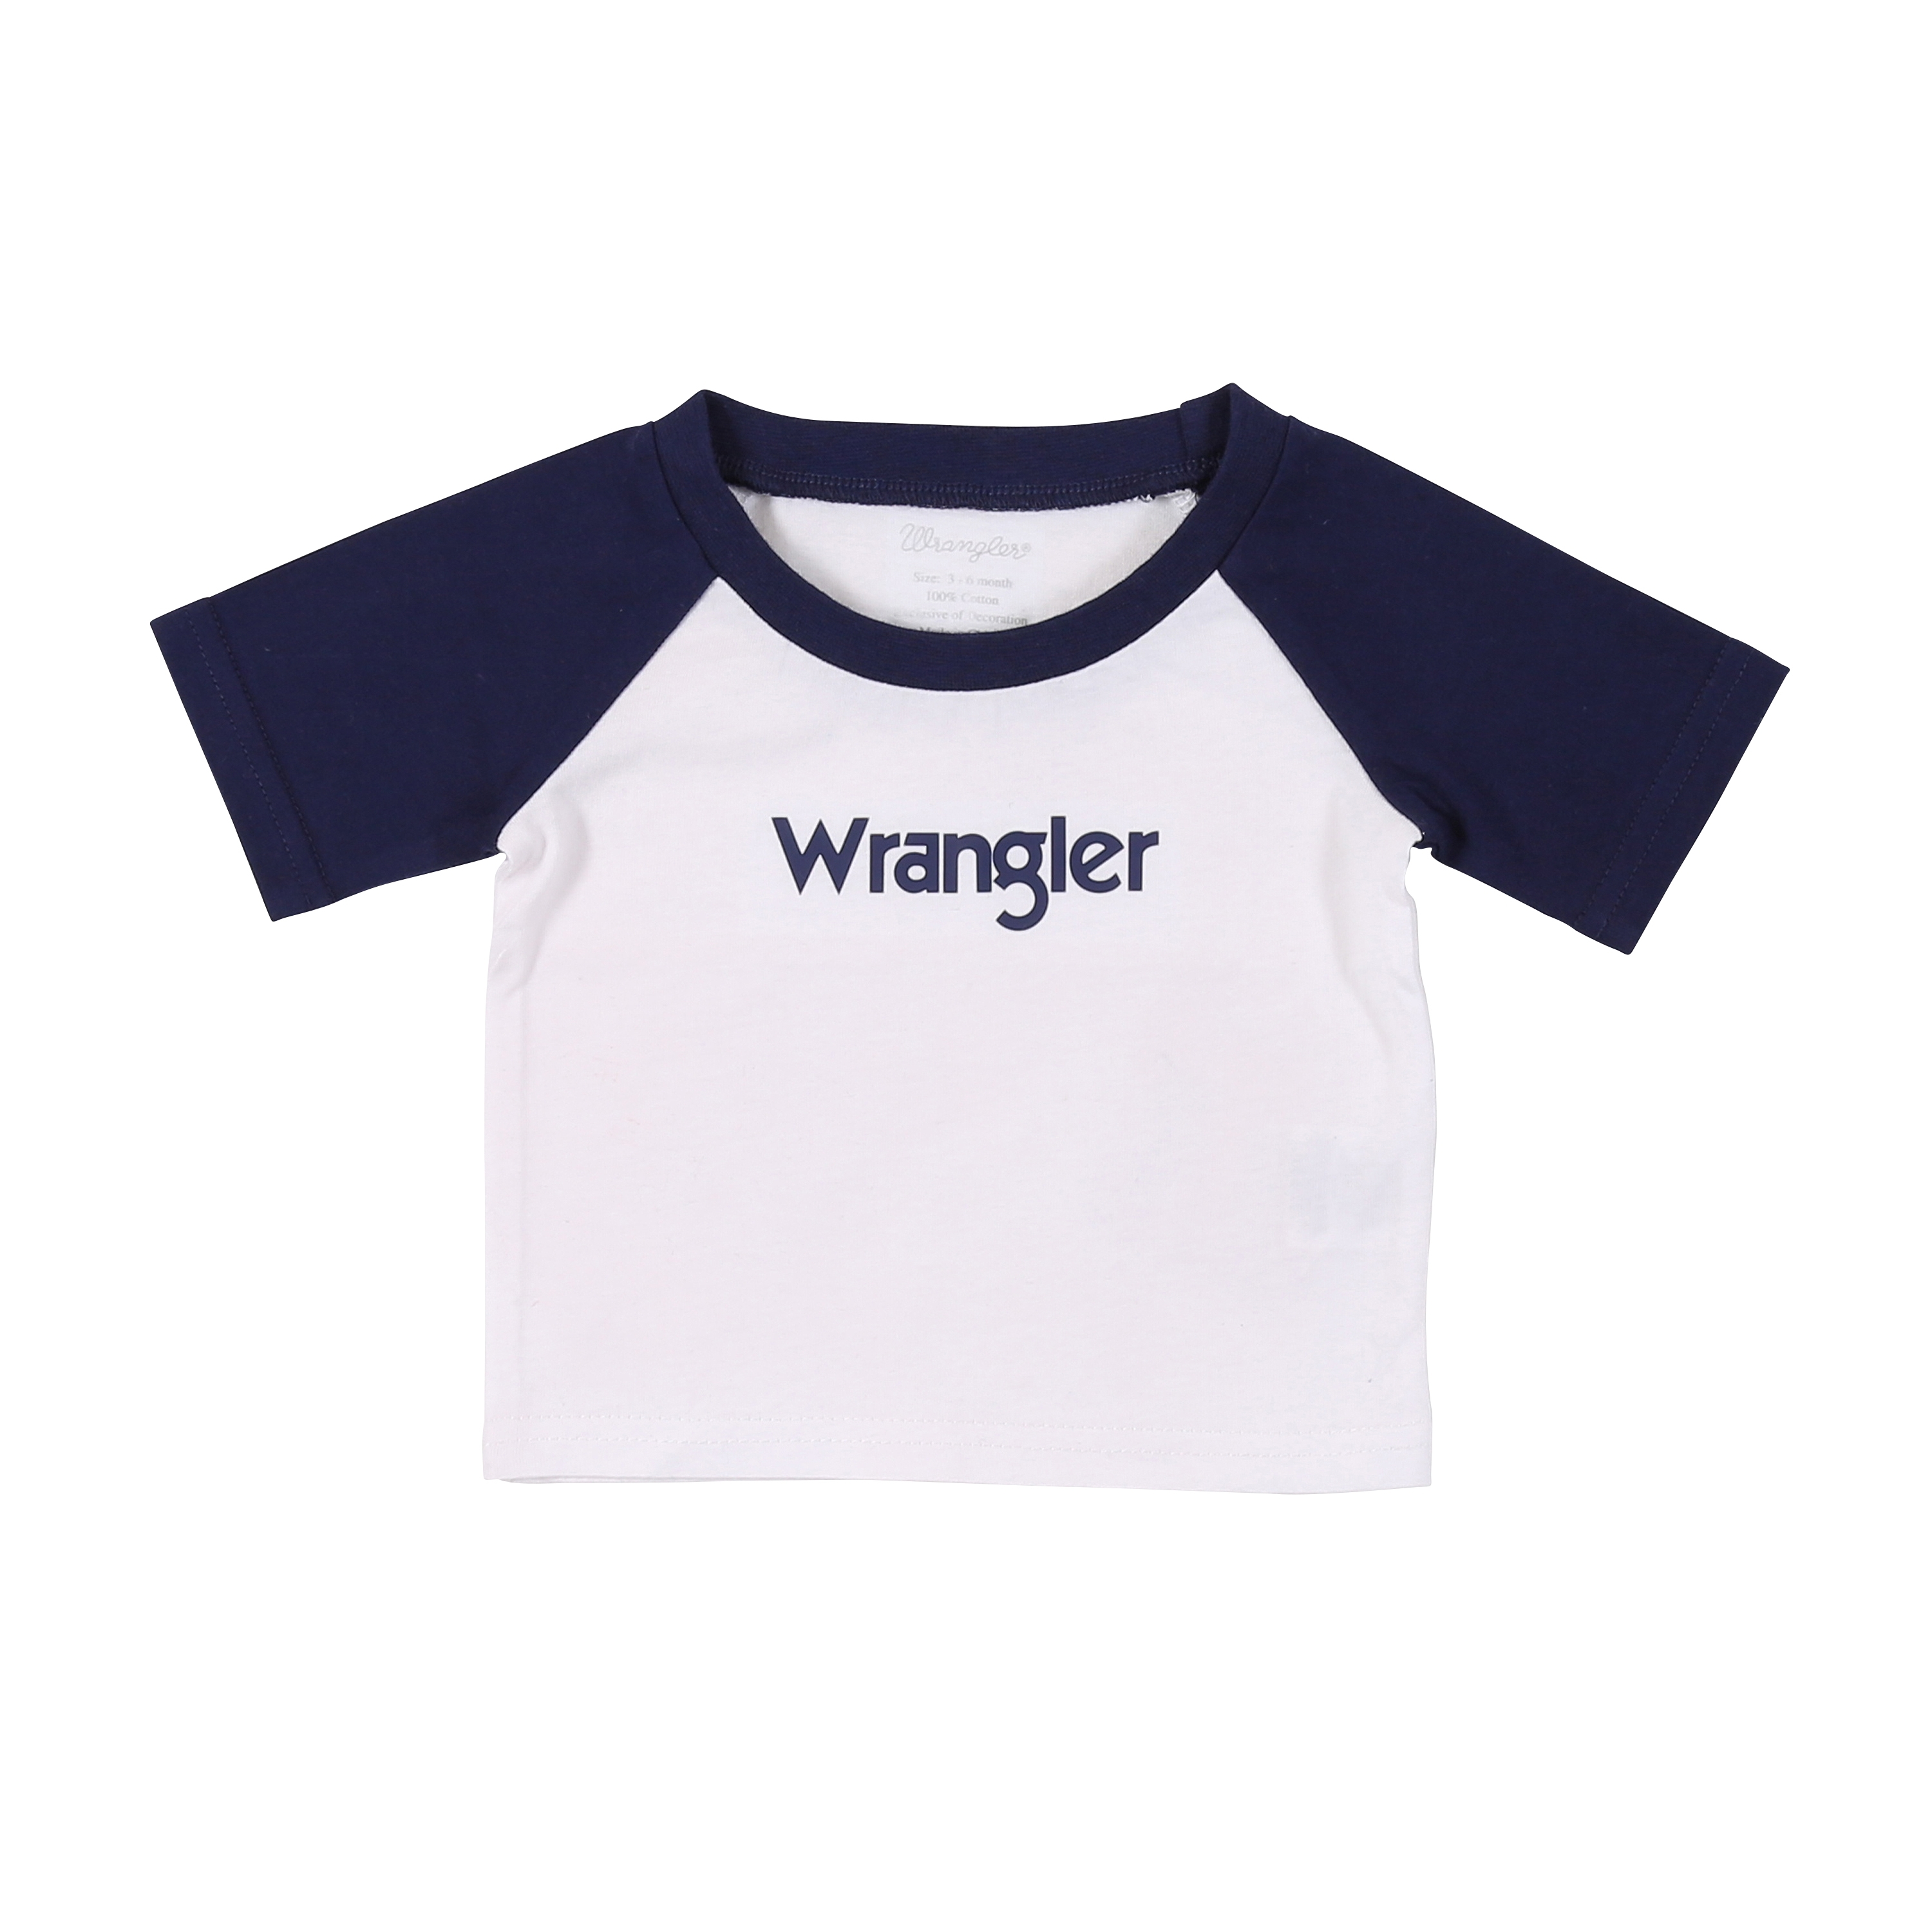 All Around Baby by Wrangler Boys Logo Tee Fort Brands